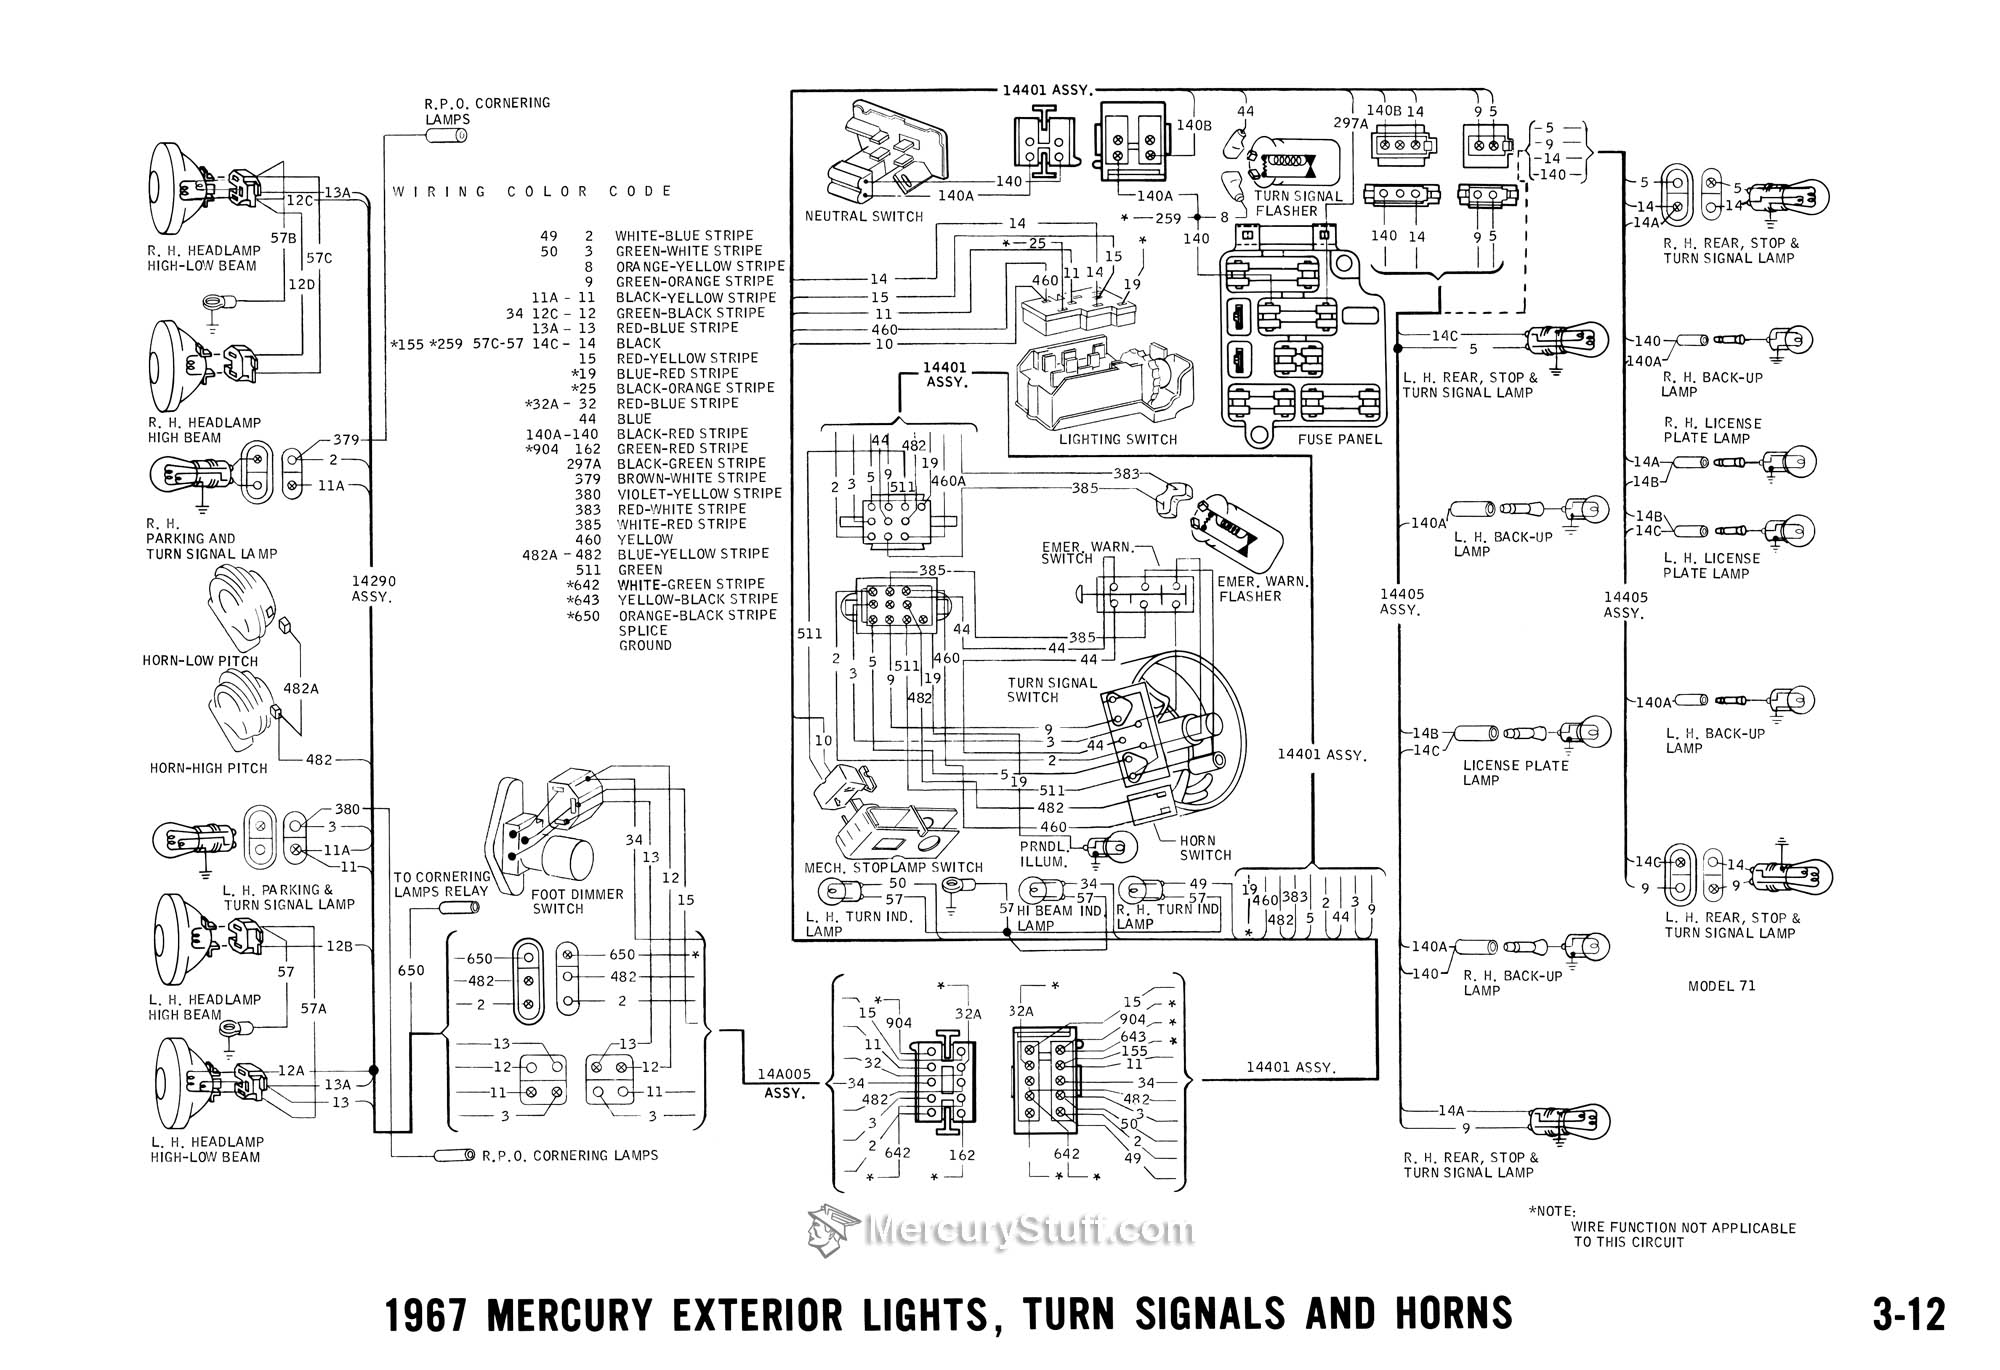 ... 1967 mercury exterior lights turn signals horns wiring diagram 2006  mercury grand marquis the wiring diagram